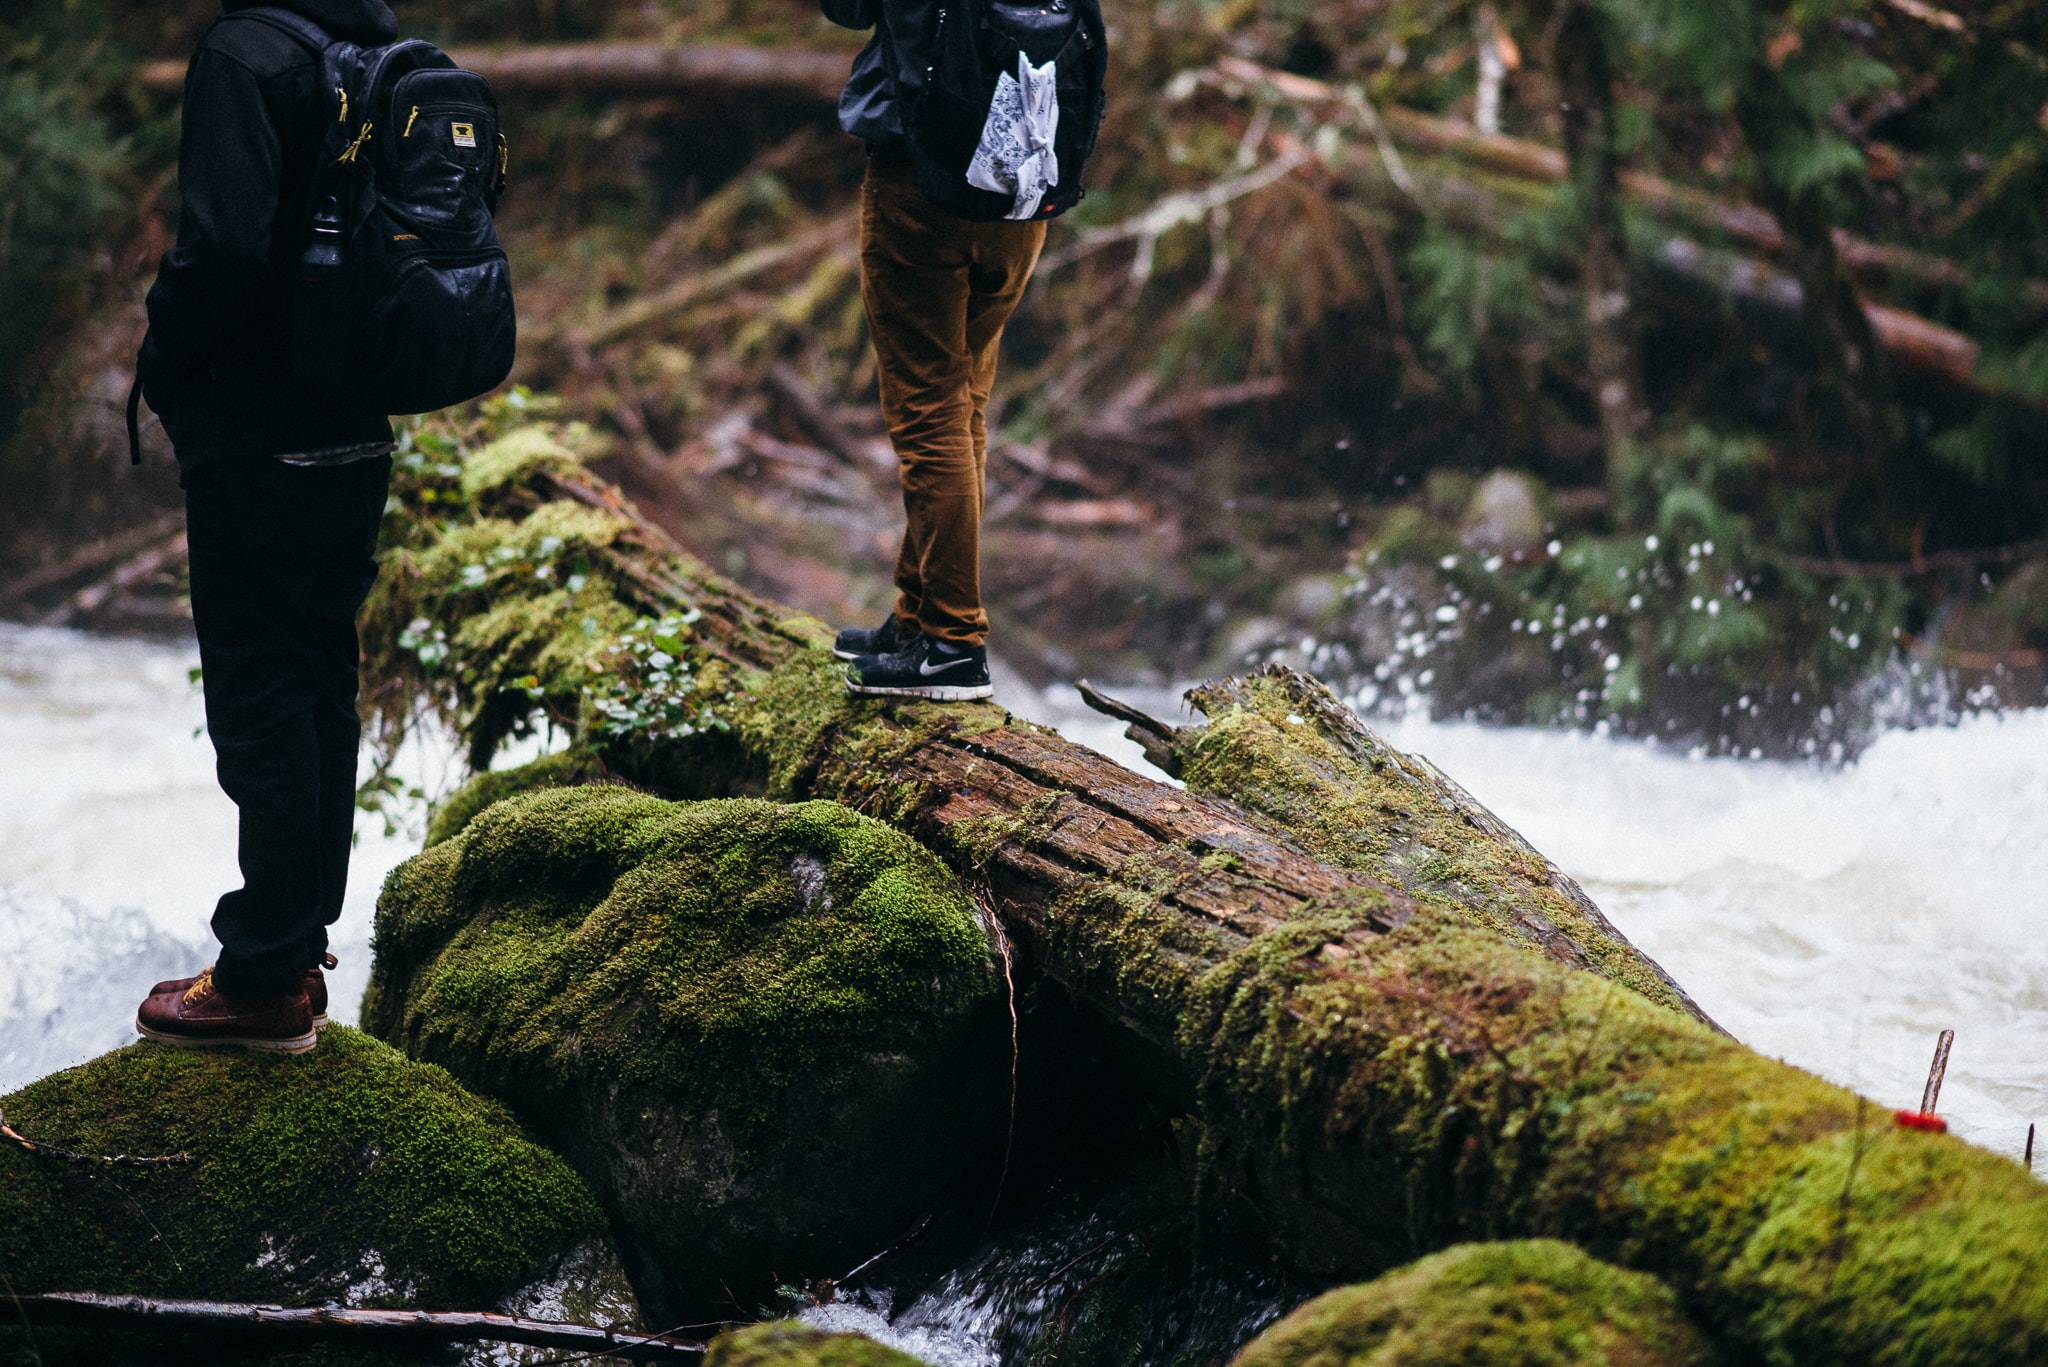 Two people on mossy rocks and logs in a fast-flowing river